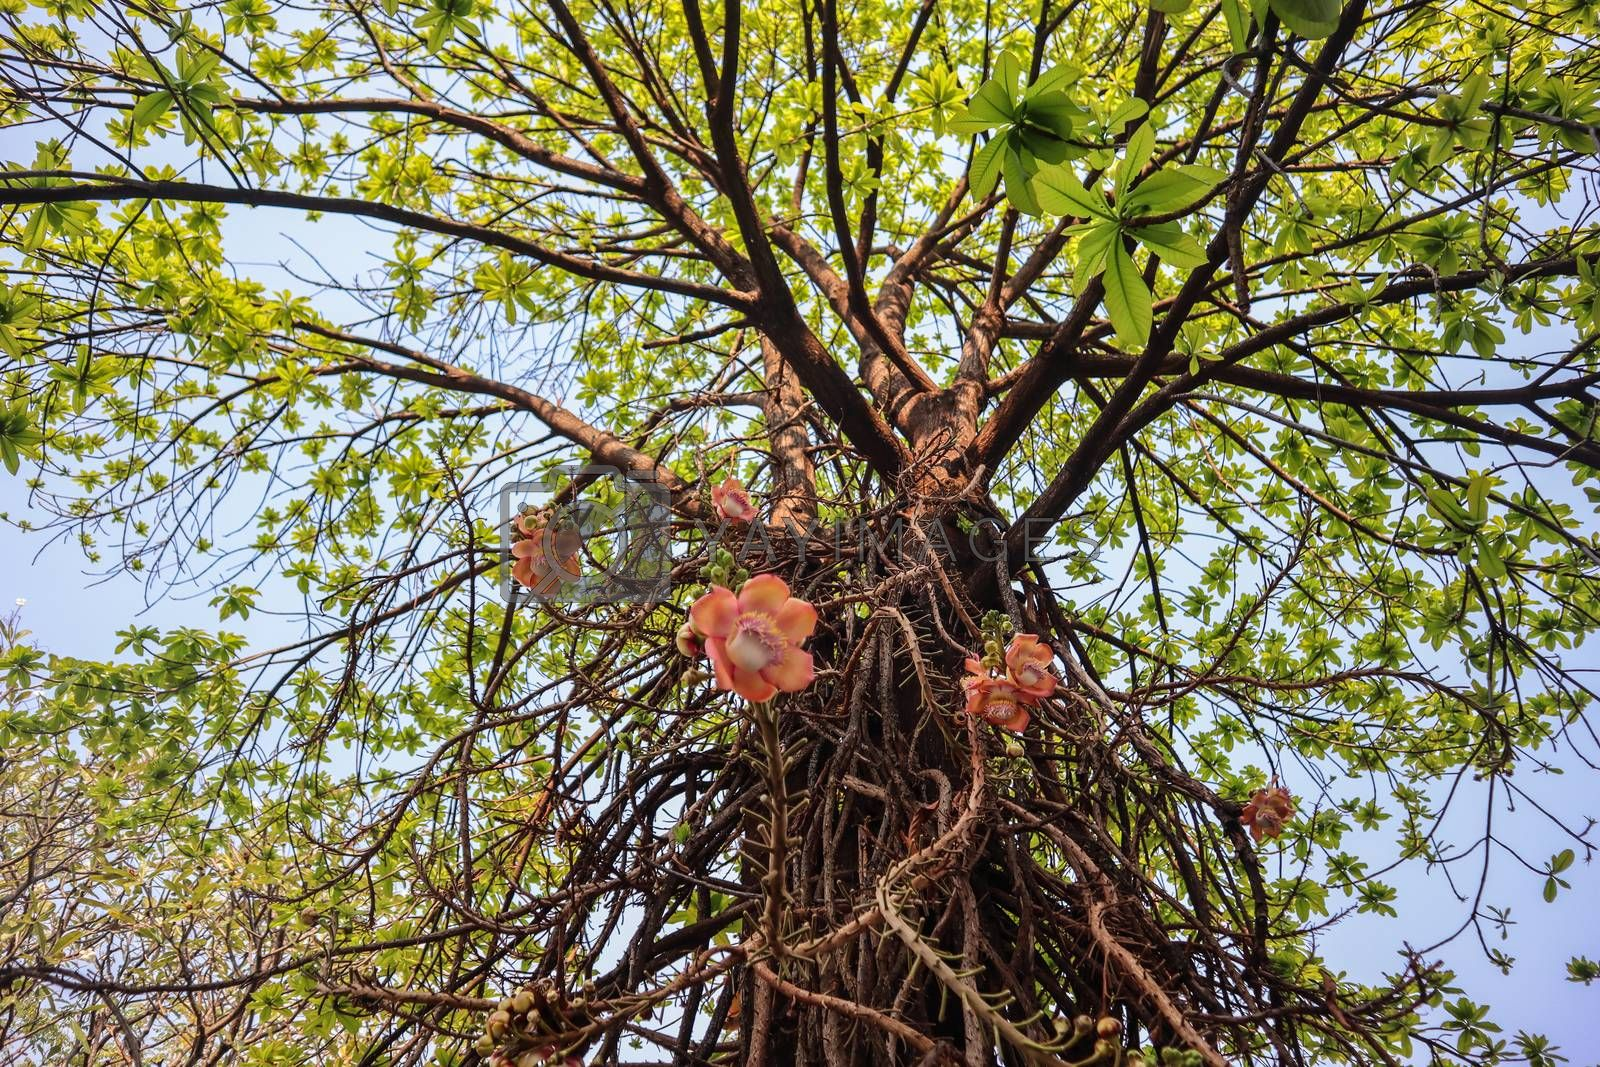 Shorea robusta, the sal tree, is a species of tree in the family Dipterocarpaceae